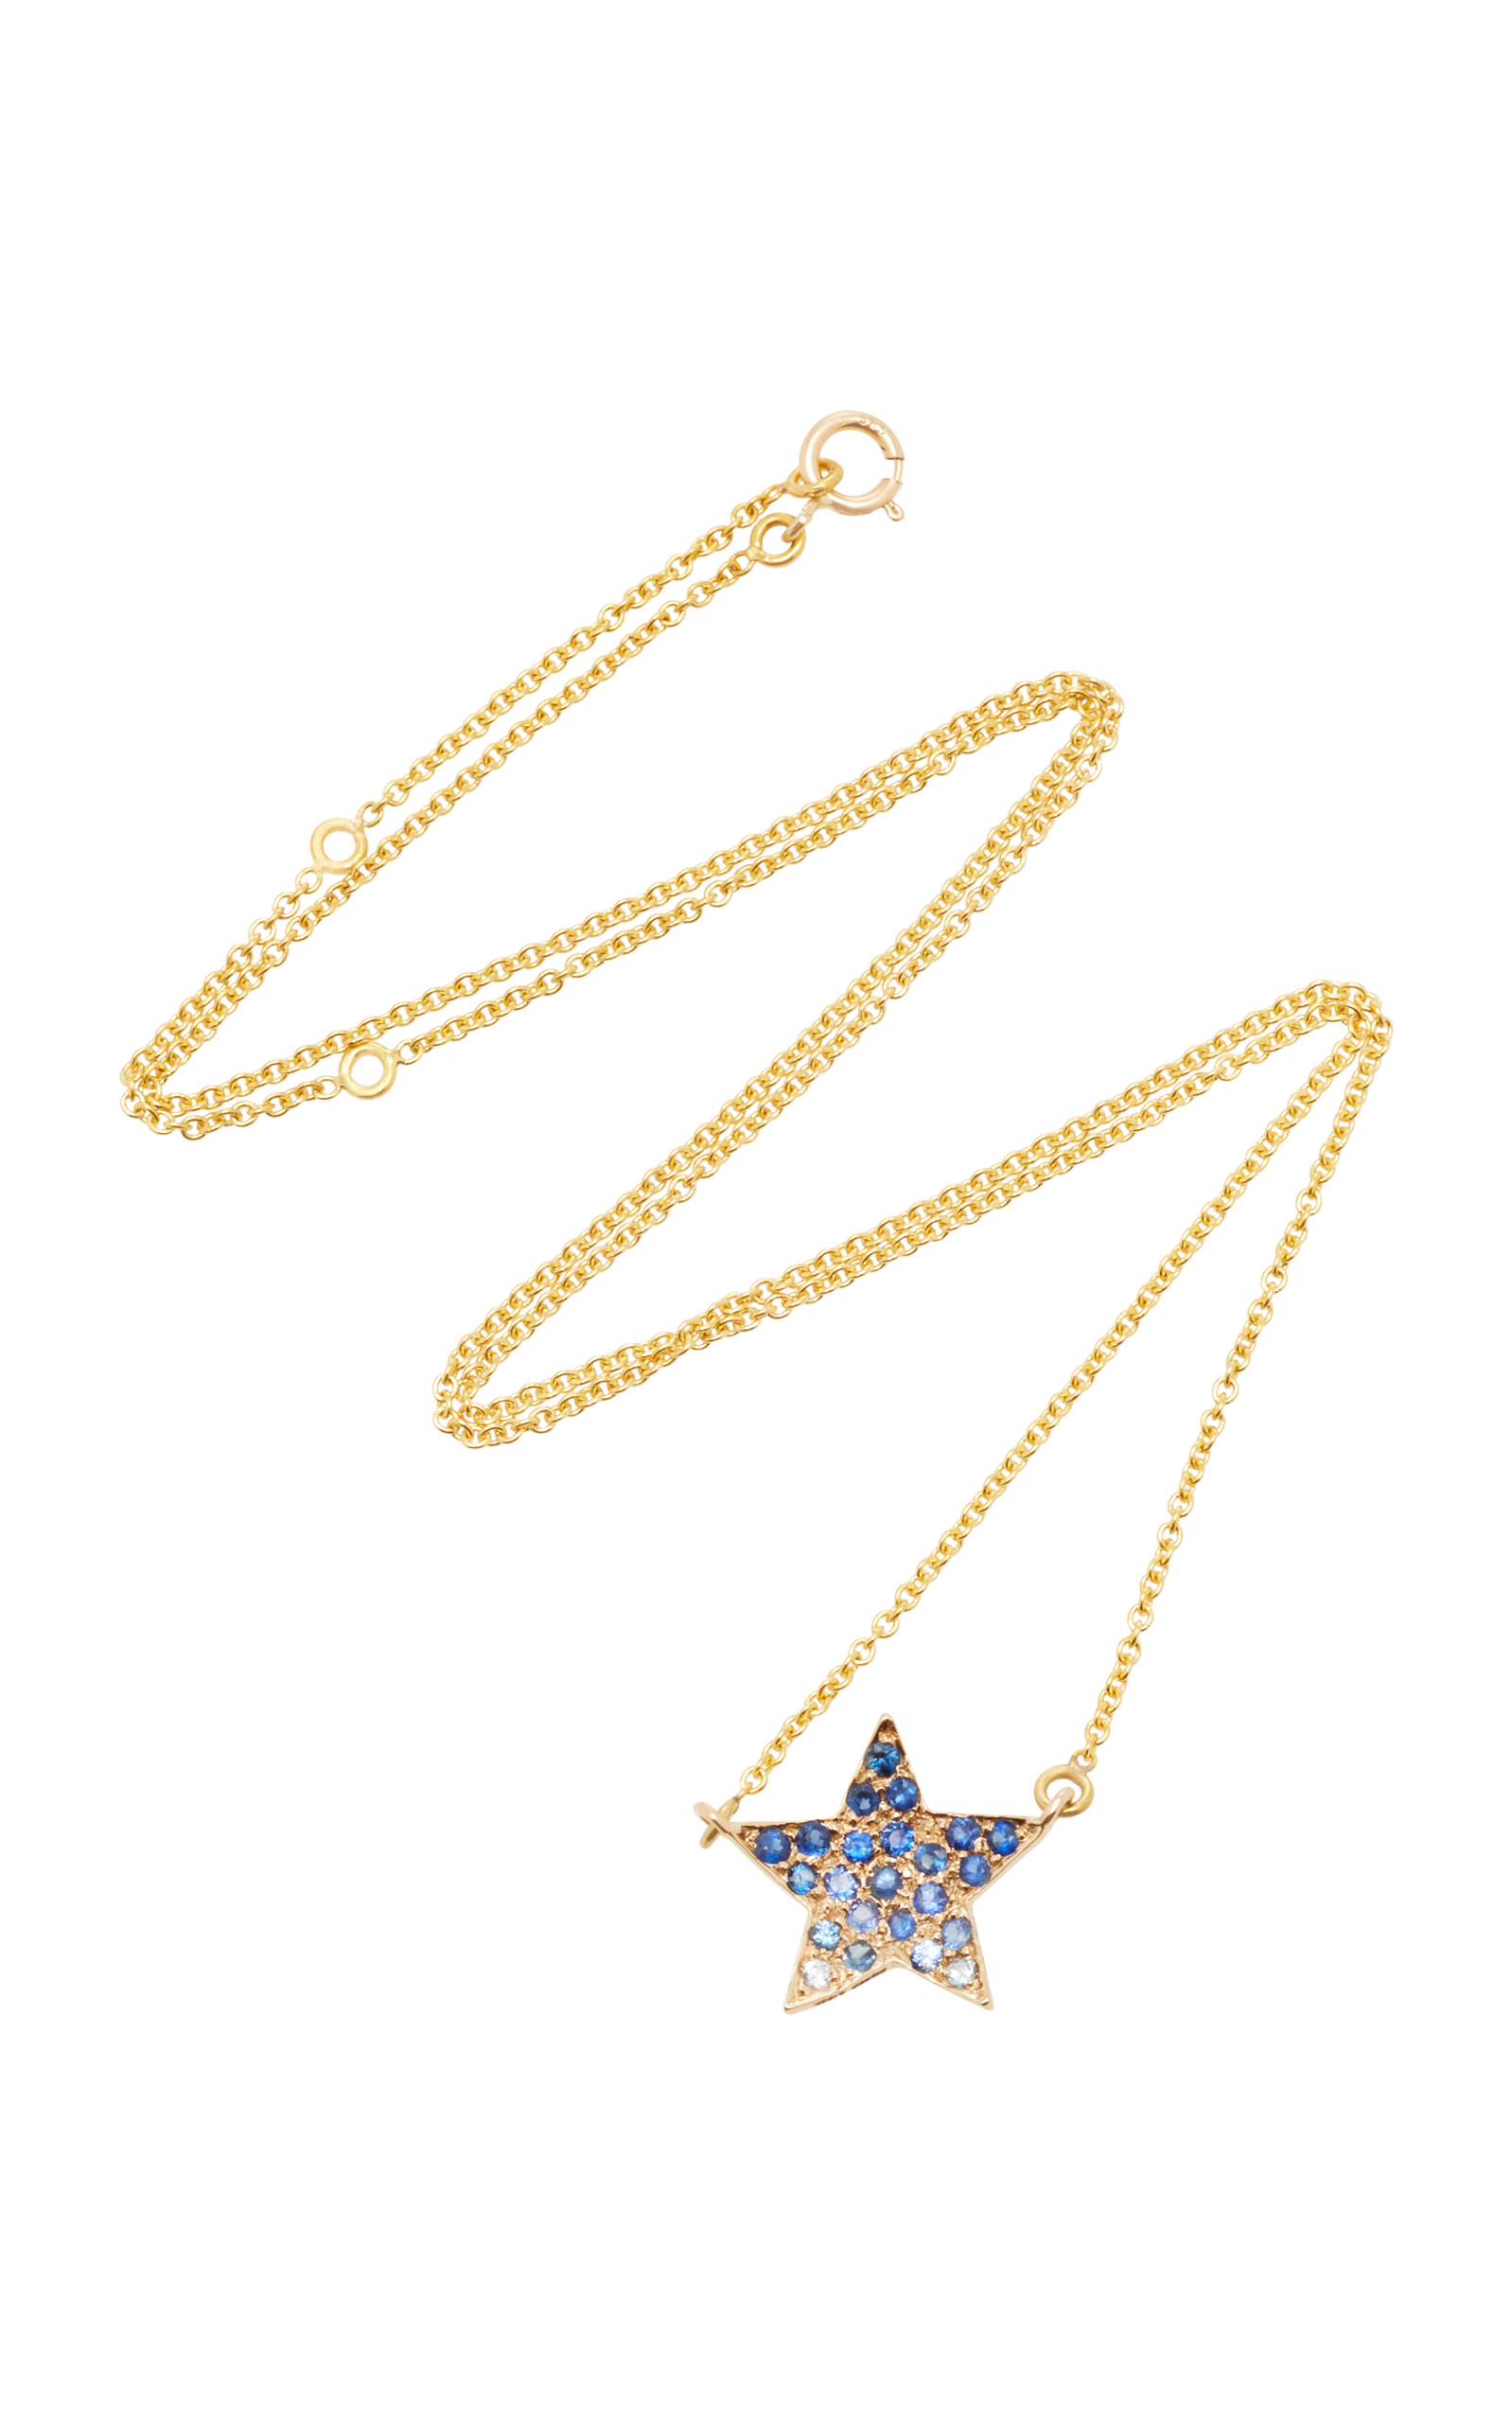 SHE BEE 14K YELLOW GOLD AND SAPPHIRE STAR PENDANT NECKLACE